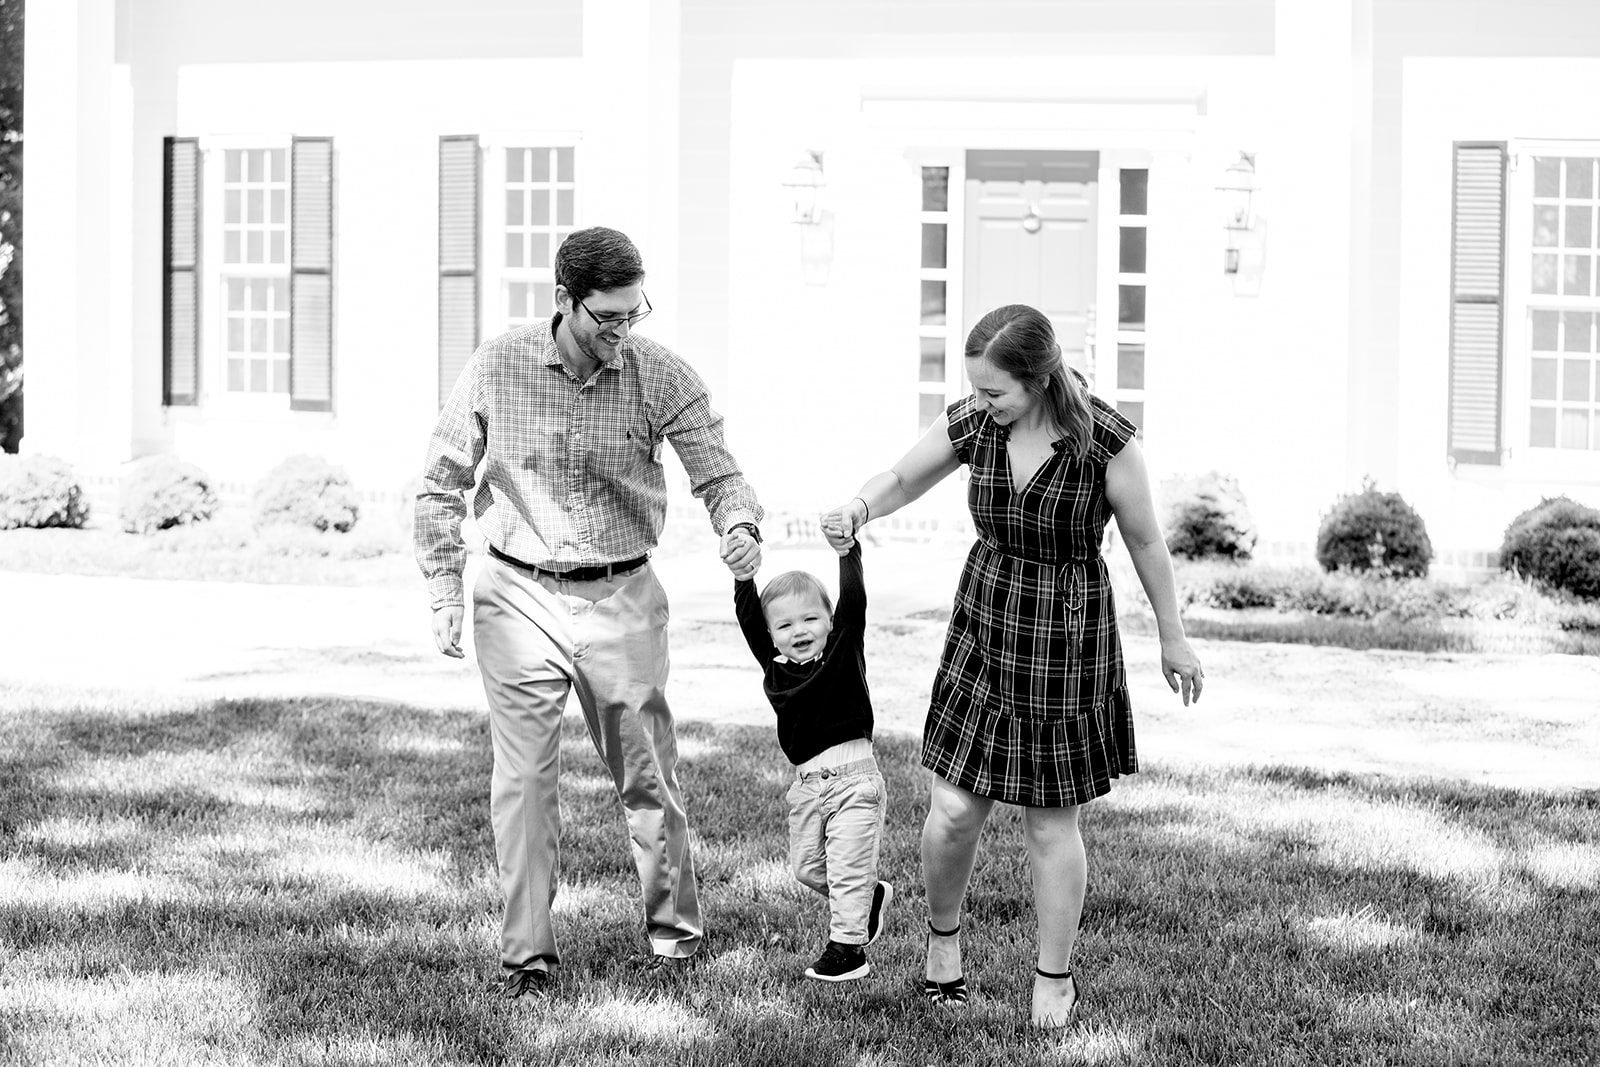 Mothers Day Front Porch Session Highlights - Image Property of www.j-dphoto.com